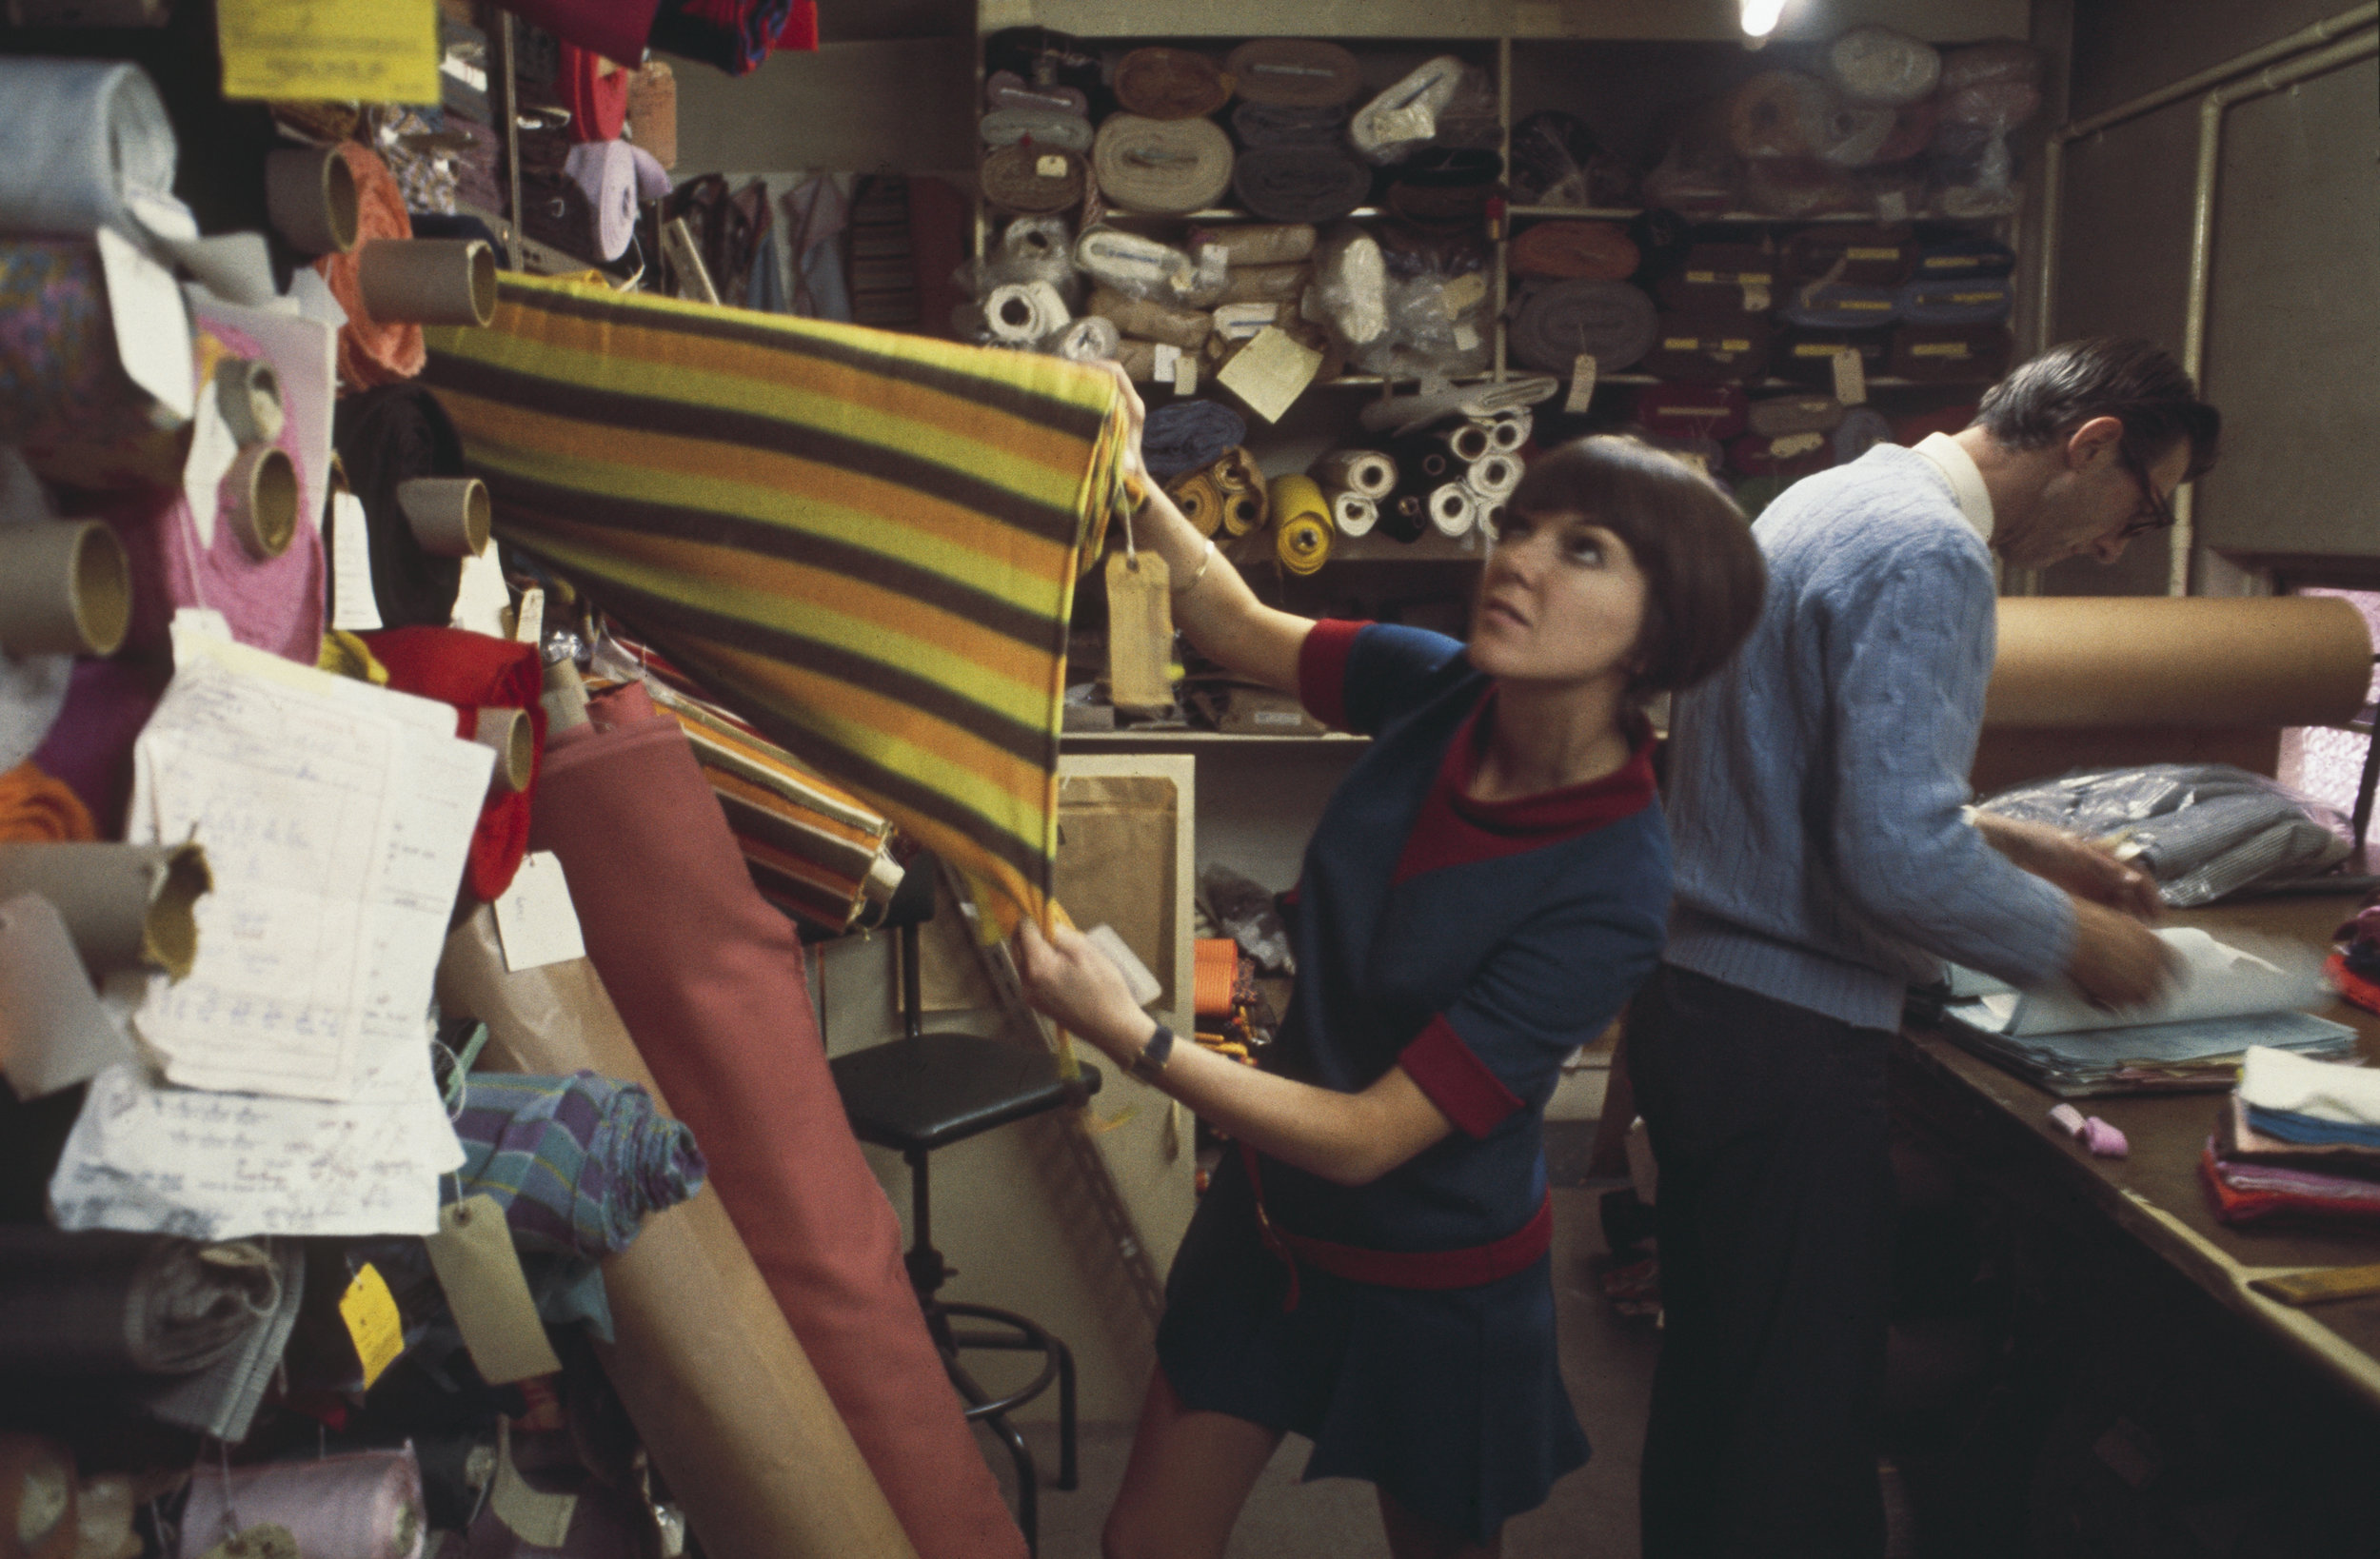 Mary Quant selecting fabric, 1967 (C) Rolls PressPopperfotoGetty Images.jpg